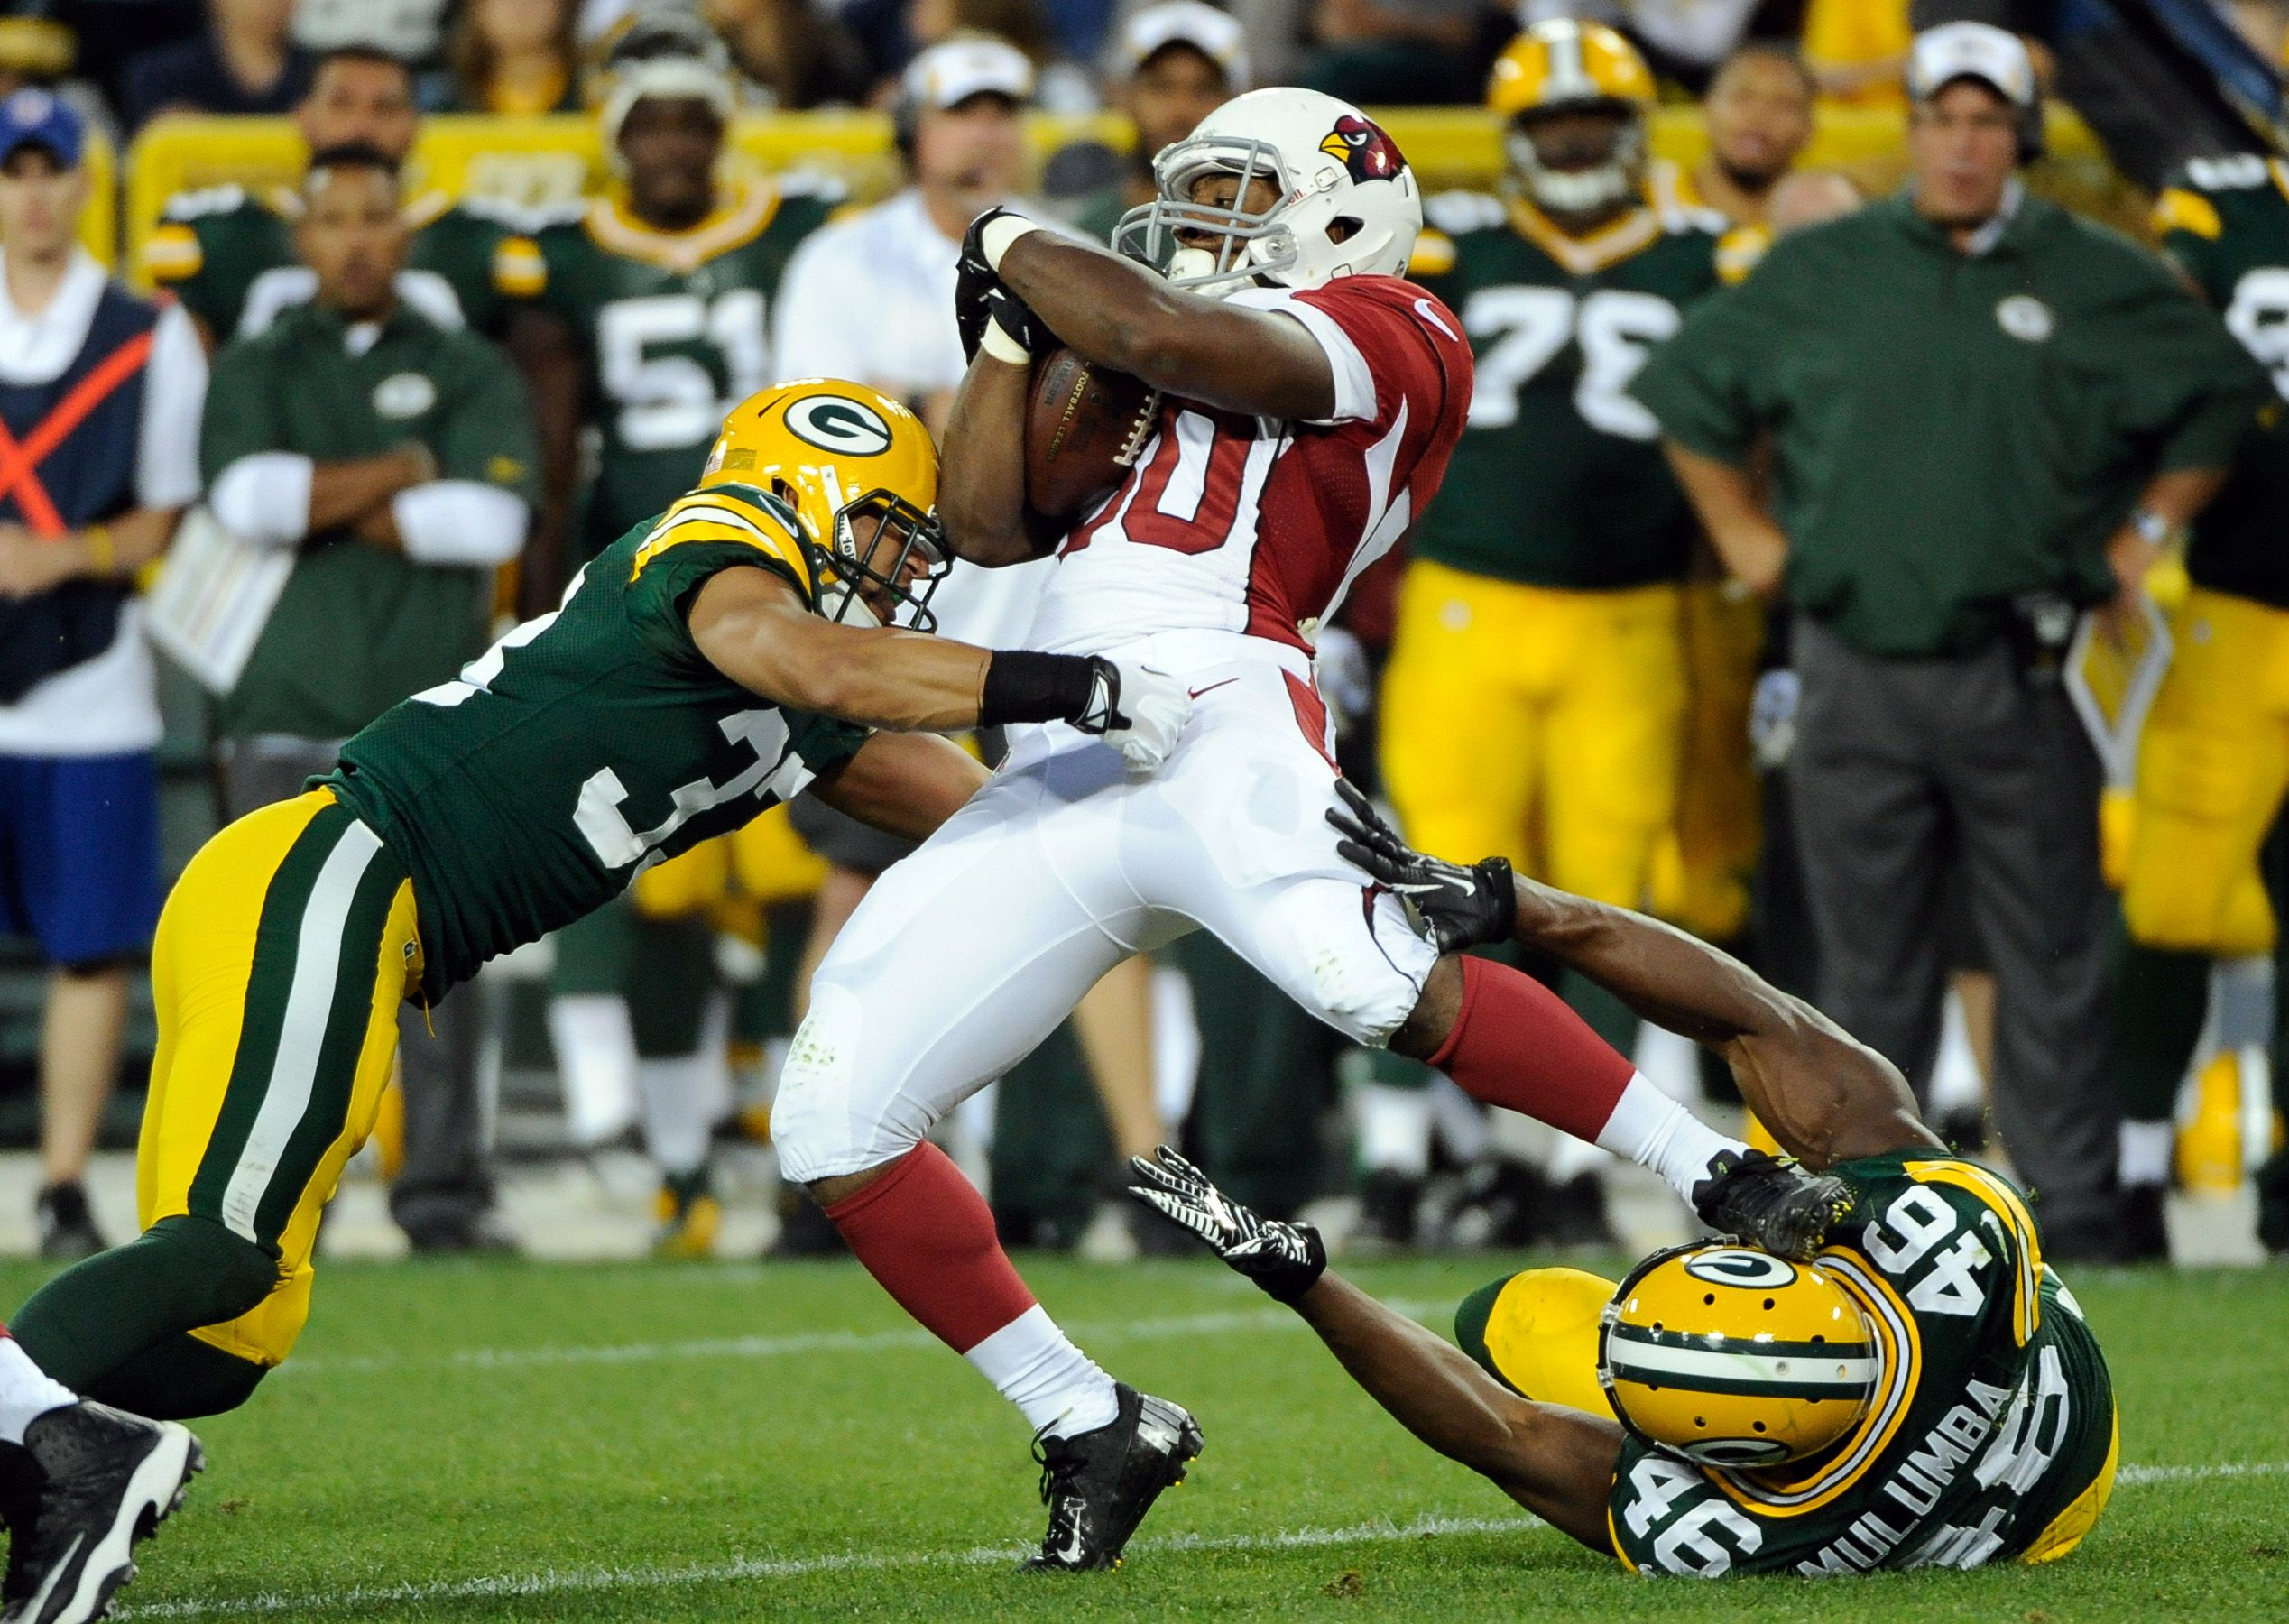 Arizona Cardinals Running Back Stepfan Taylor Is Stopped By Green Bay Packers Cornerback Micah Hyde And Defensive Line Cardinals Game Green Bay Packers Packers